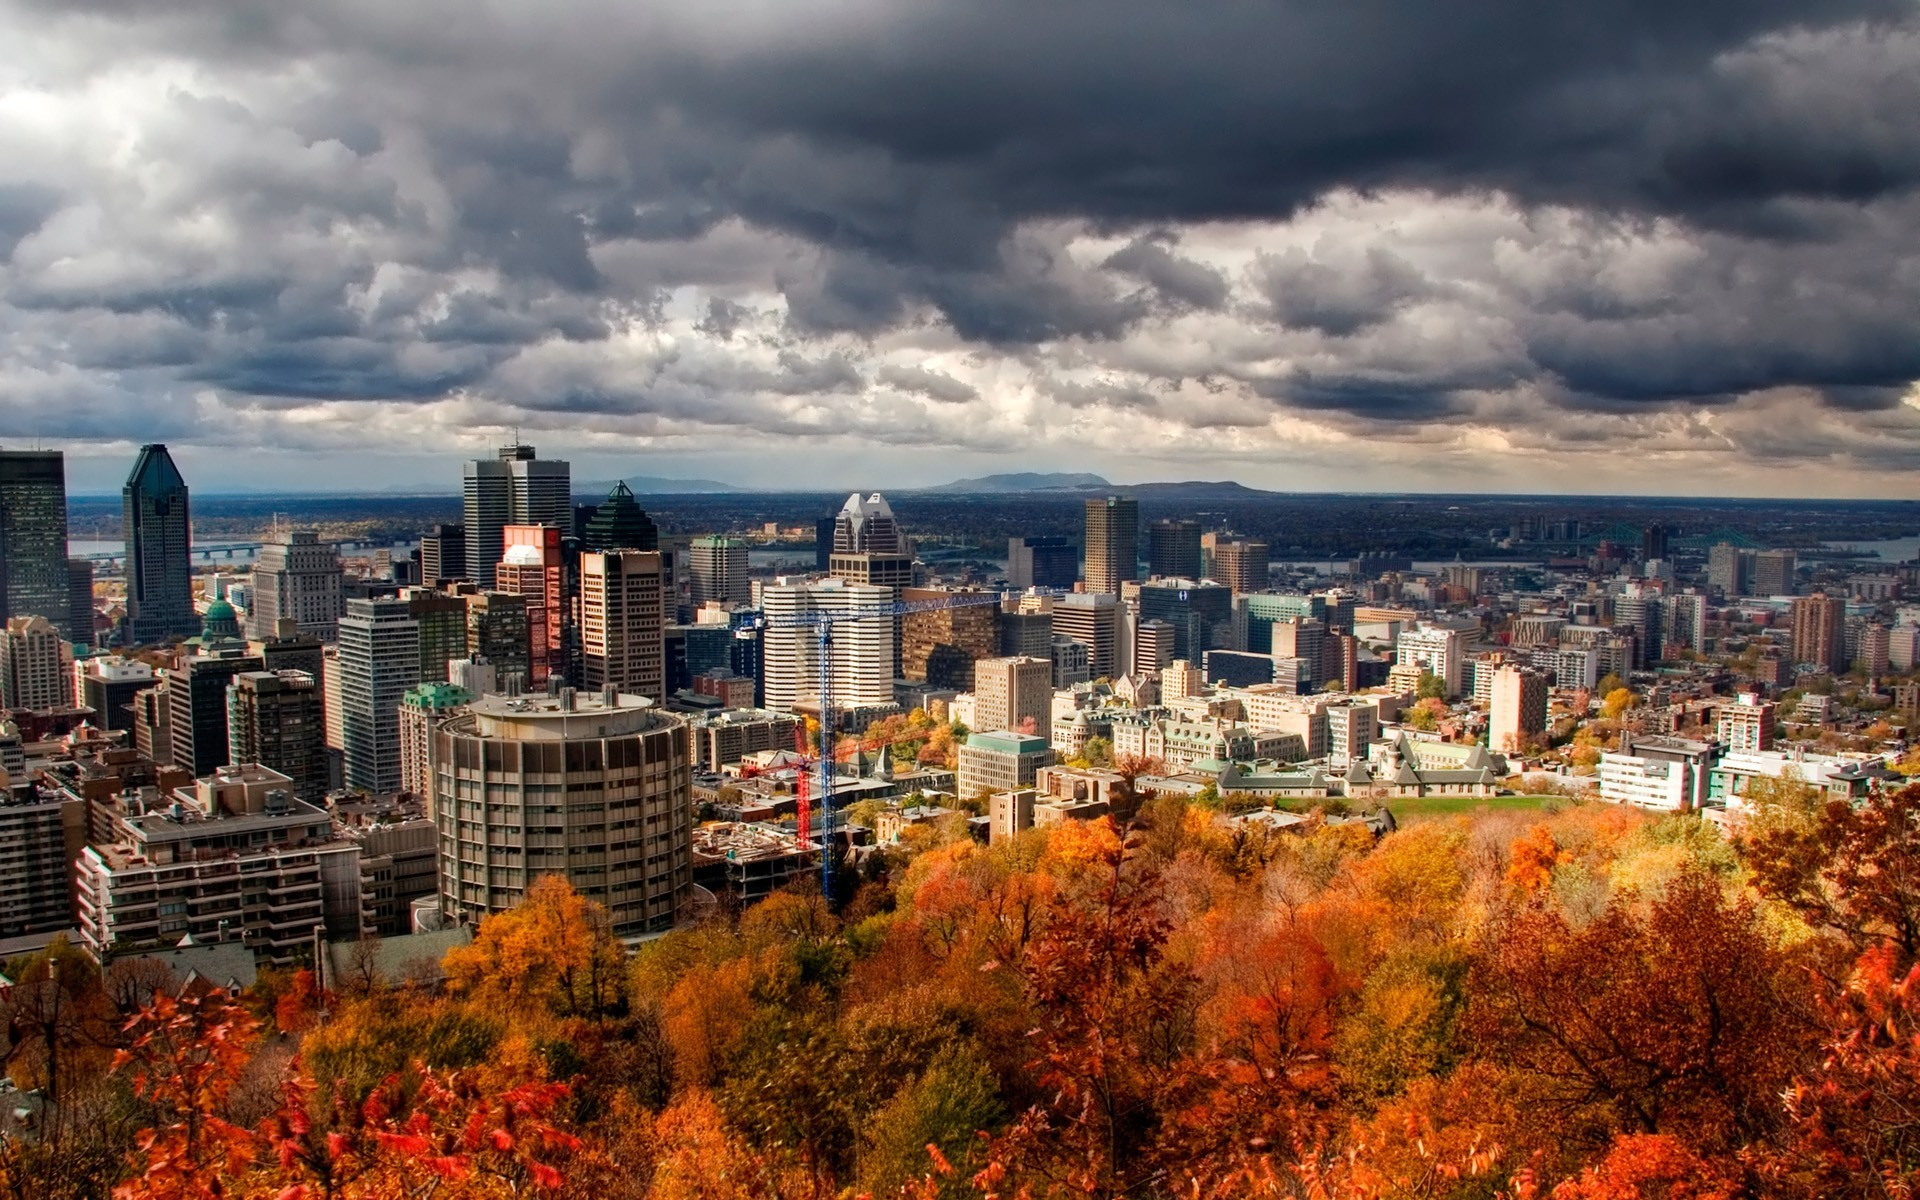 montreal-world-hd-wallpaper-1920x1200-3685.jpg